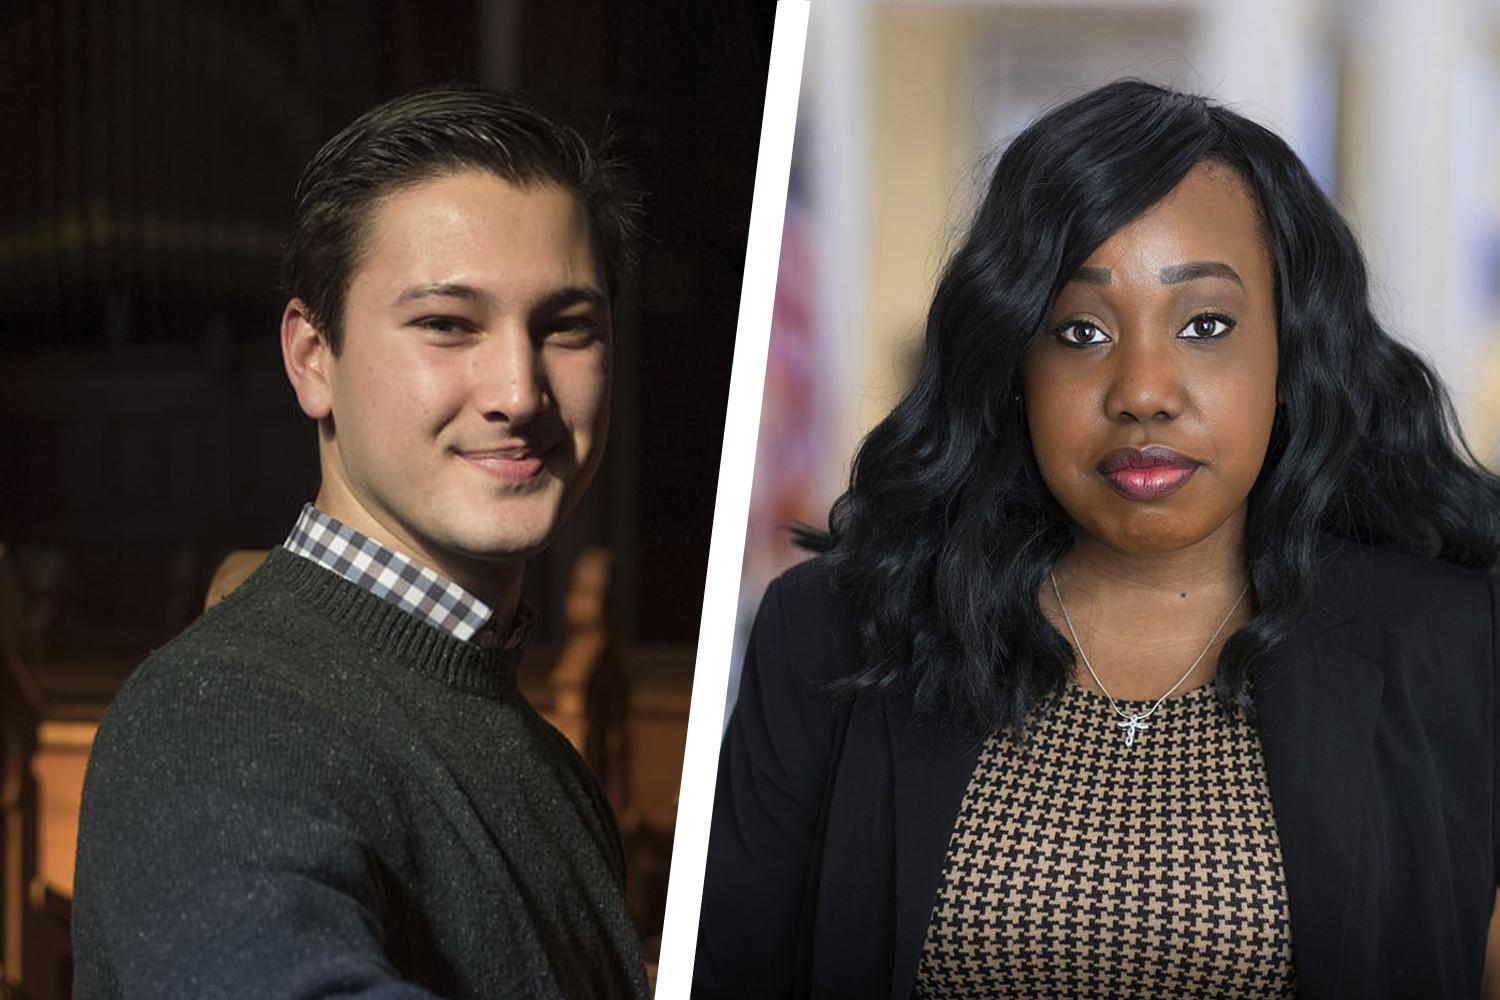 DeAnza Cook, right, and Jack Brake were among last year's Harrison Undergraduate Research Award recipients. (Photos by Dan Addison, University Communications)